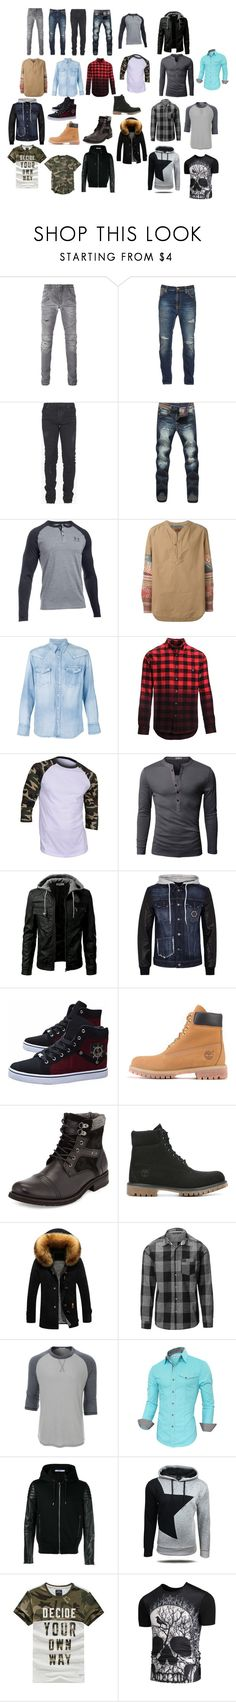 """fashion"" by izze93 on Polyvore featuring Pierre Balmain, Nudie Jeans Co., Balmain, Under Armour, Missoni, Visvim, Woolrich, Doublju, Philipp Plein and Timberland"